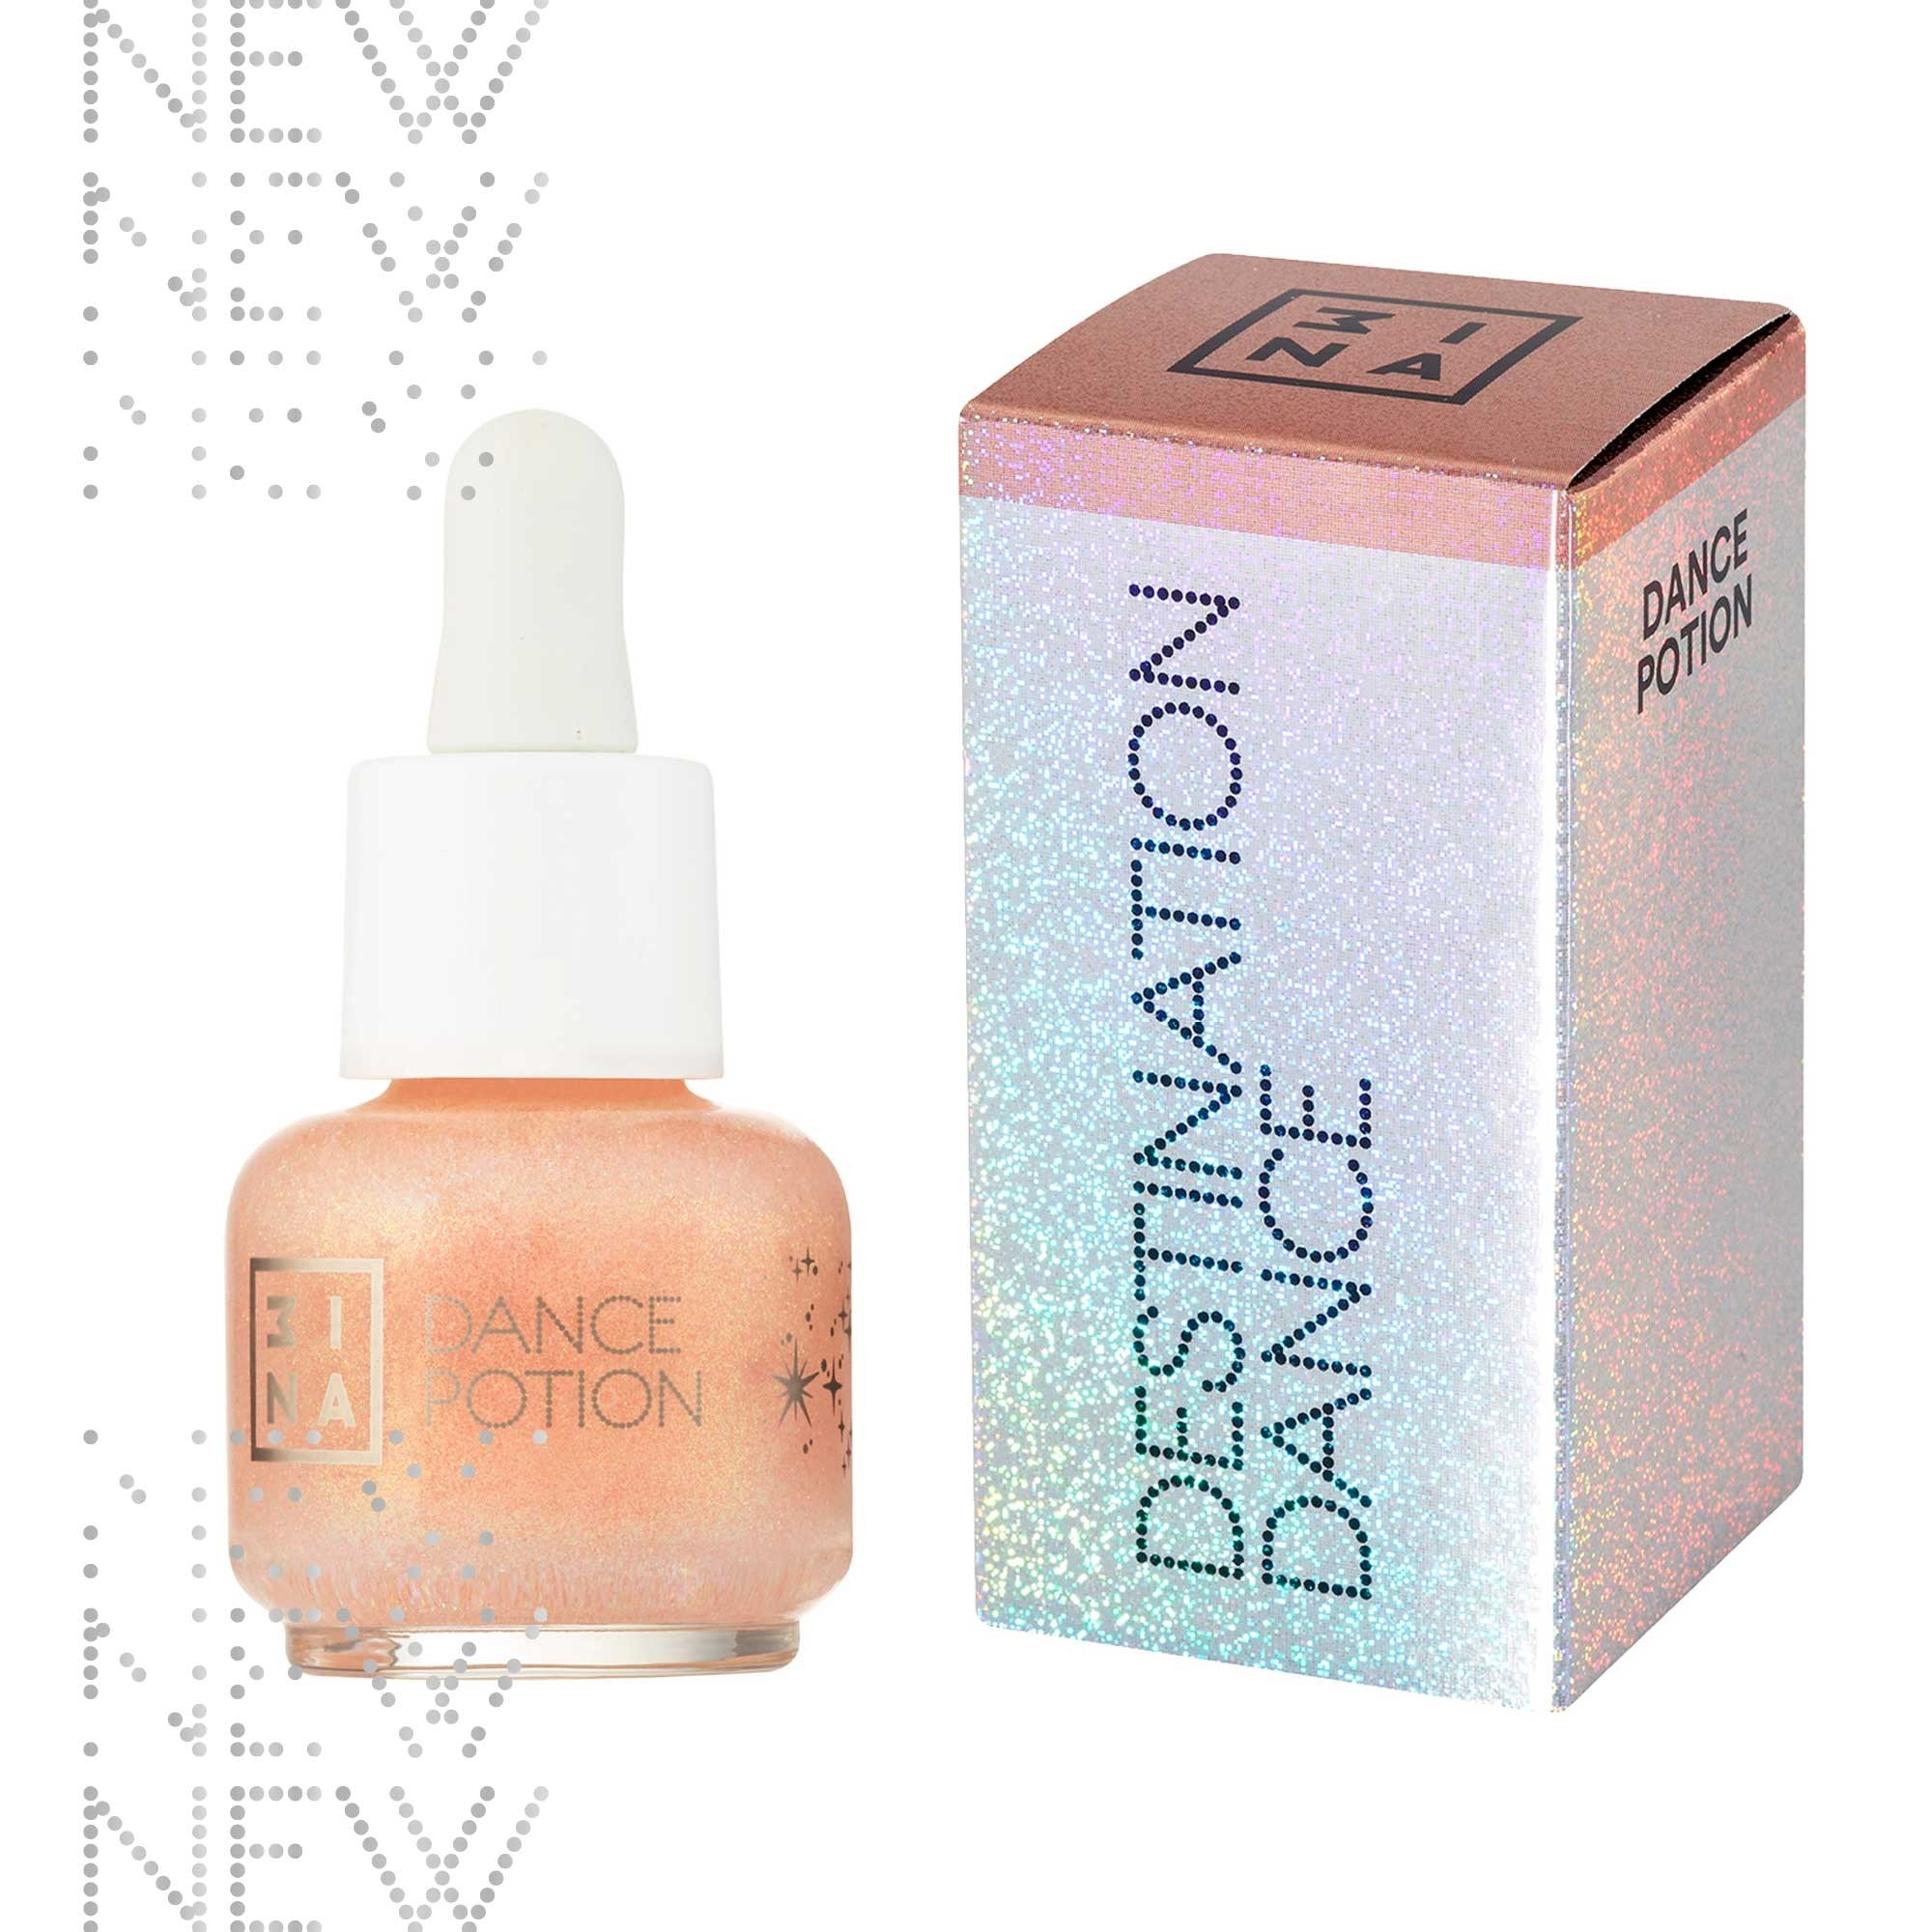 Dance Potion|Crystal Higlighter|15ml